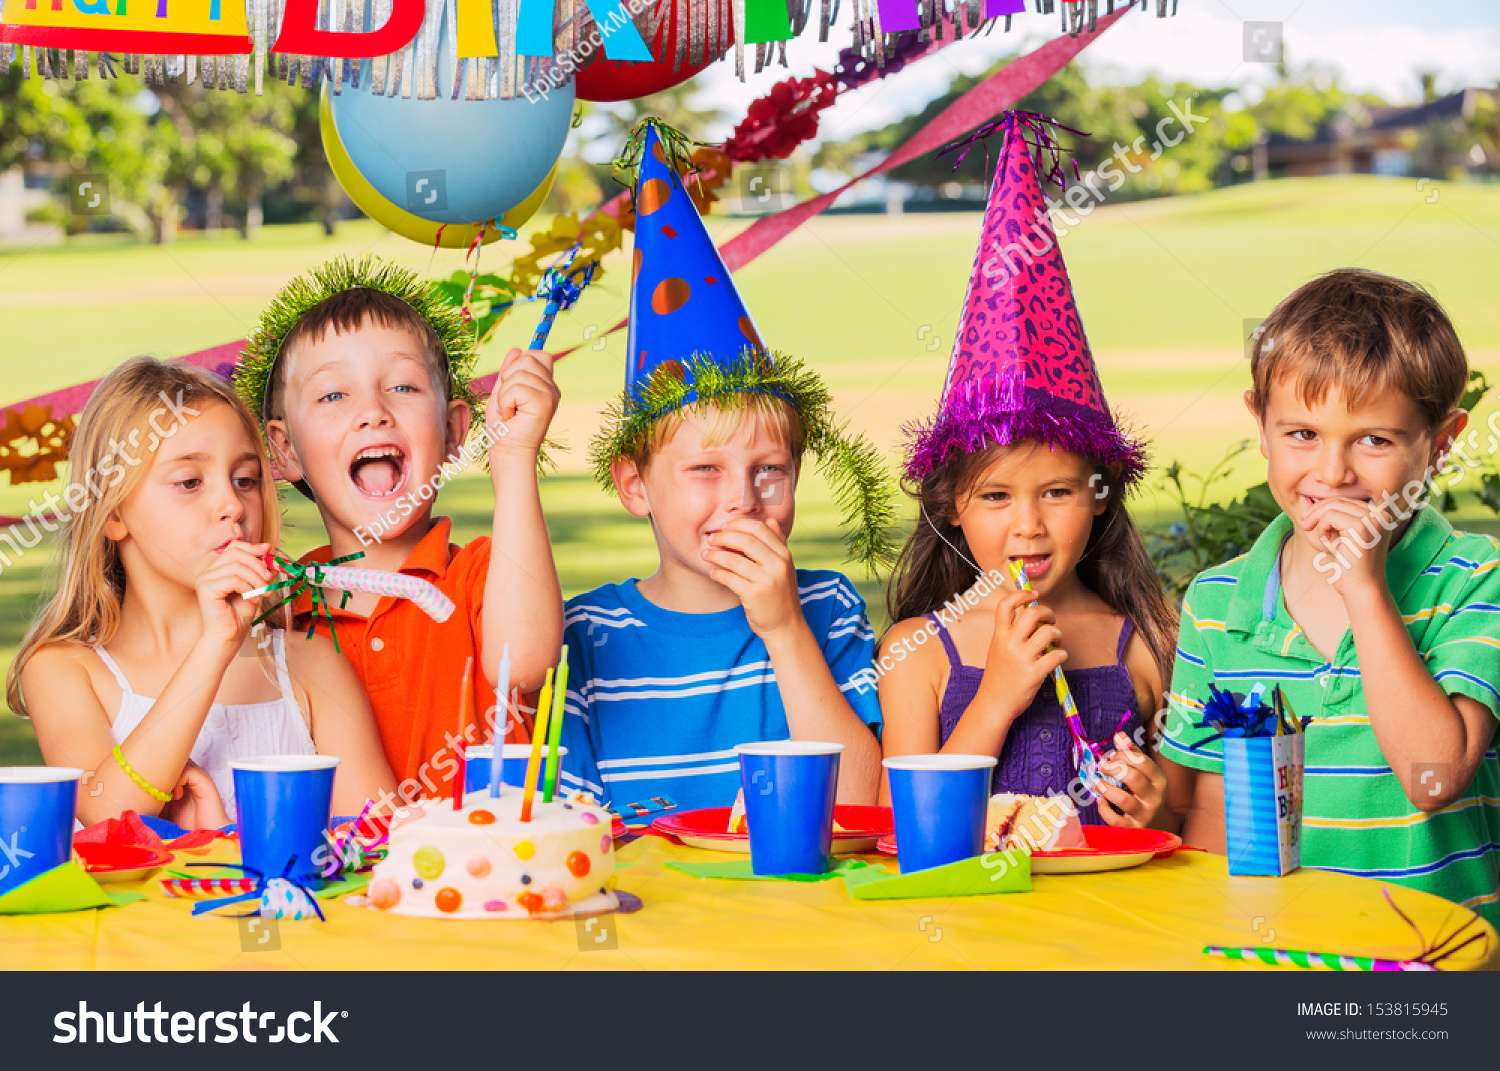 Group of adorable kids at birthday party #153815945